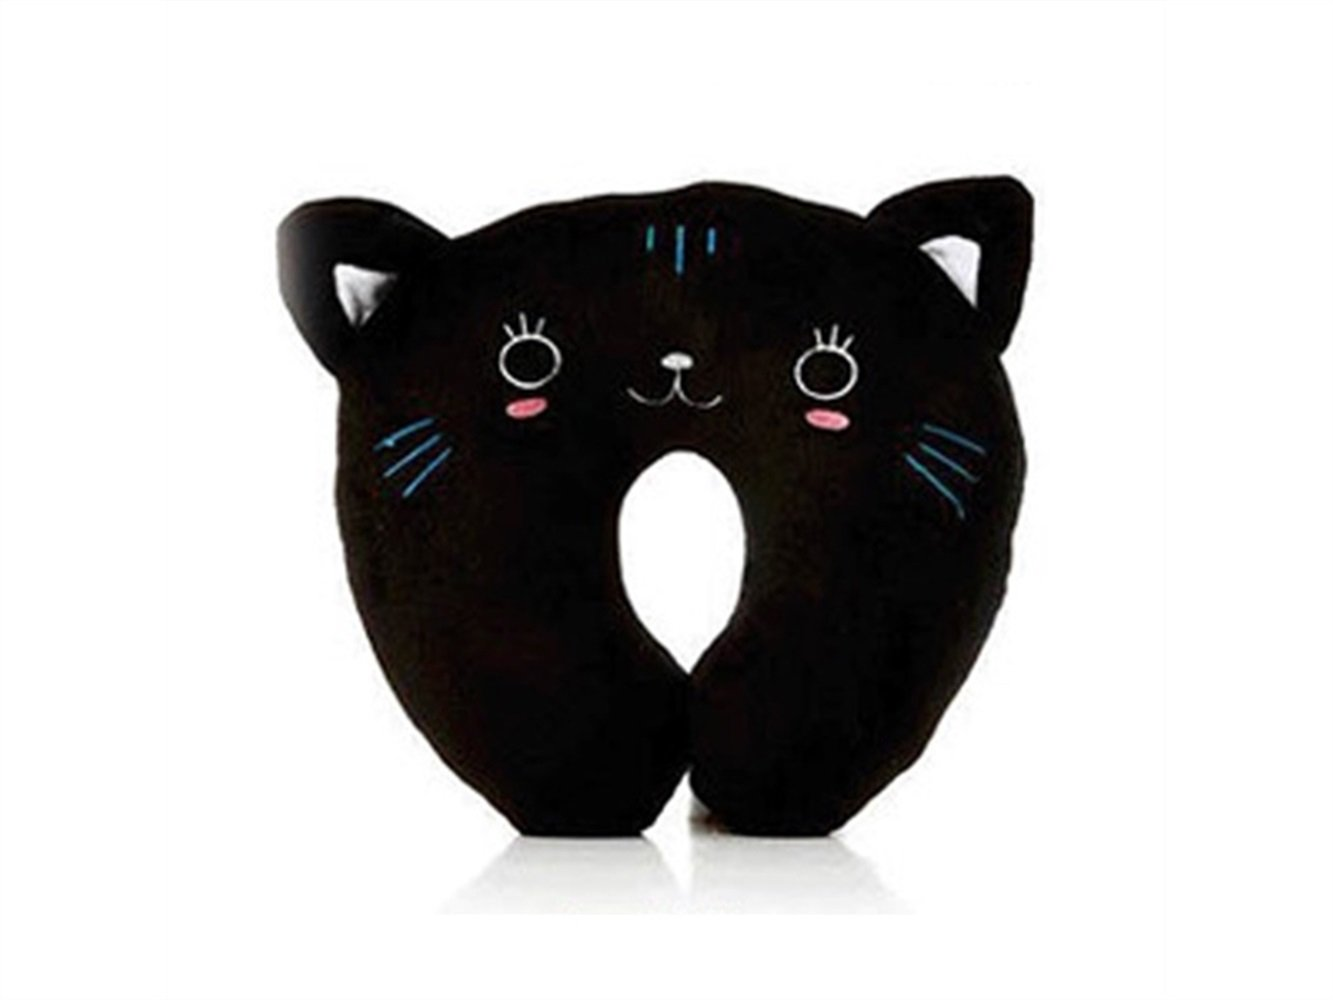 Yuchoi Perfectly Shaped Cartoon Animal U-shaped Neck Pillow Travel Car Airplane Seat Neck Rest for Home Office(Black Cat)